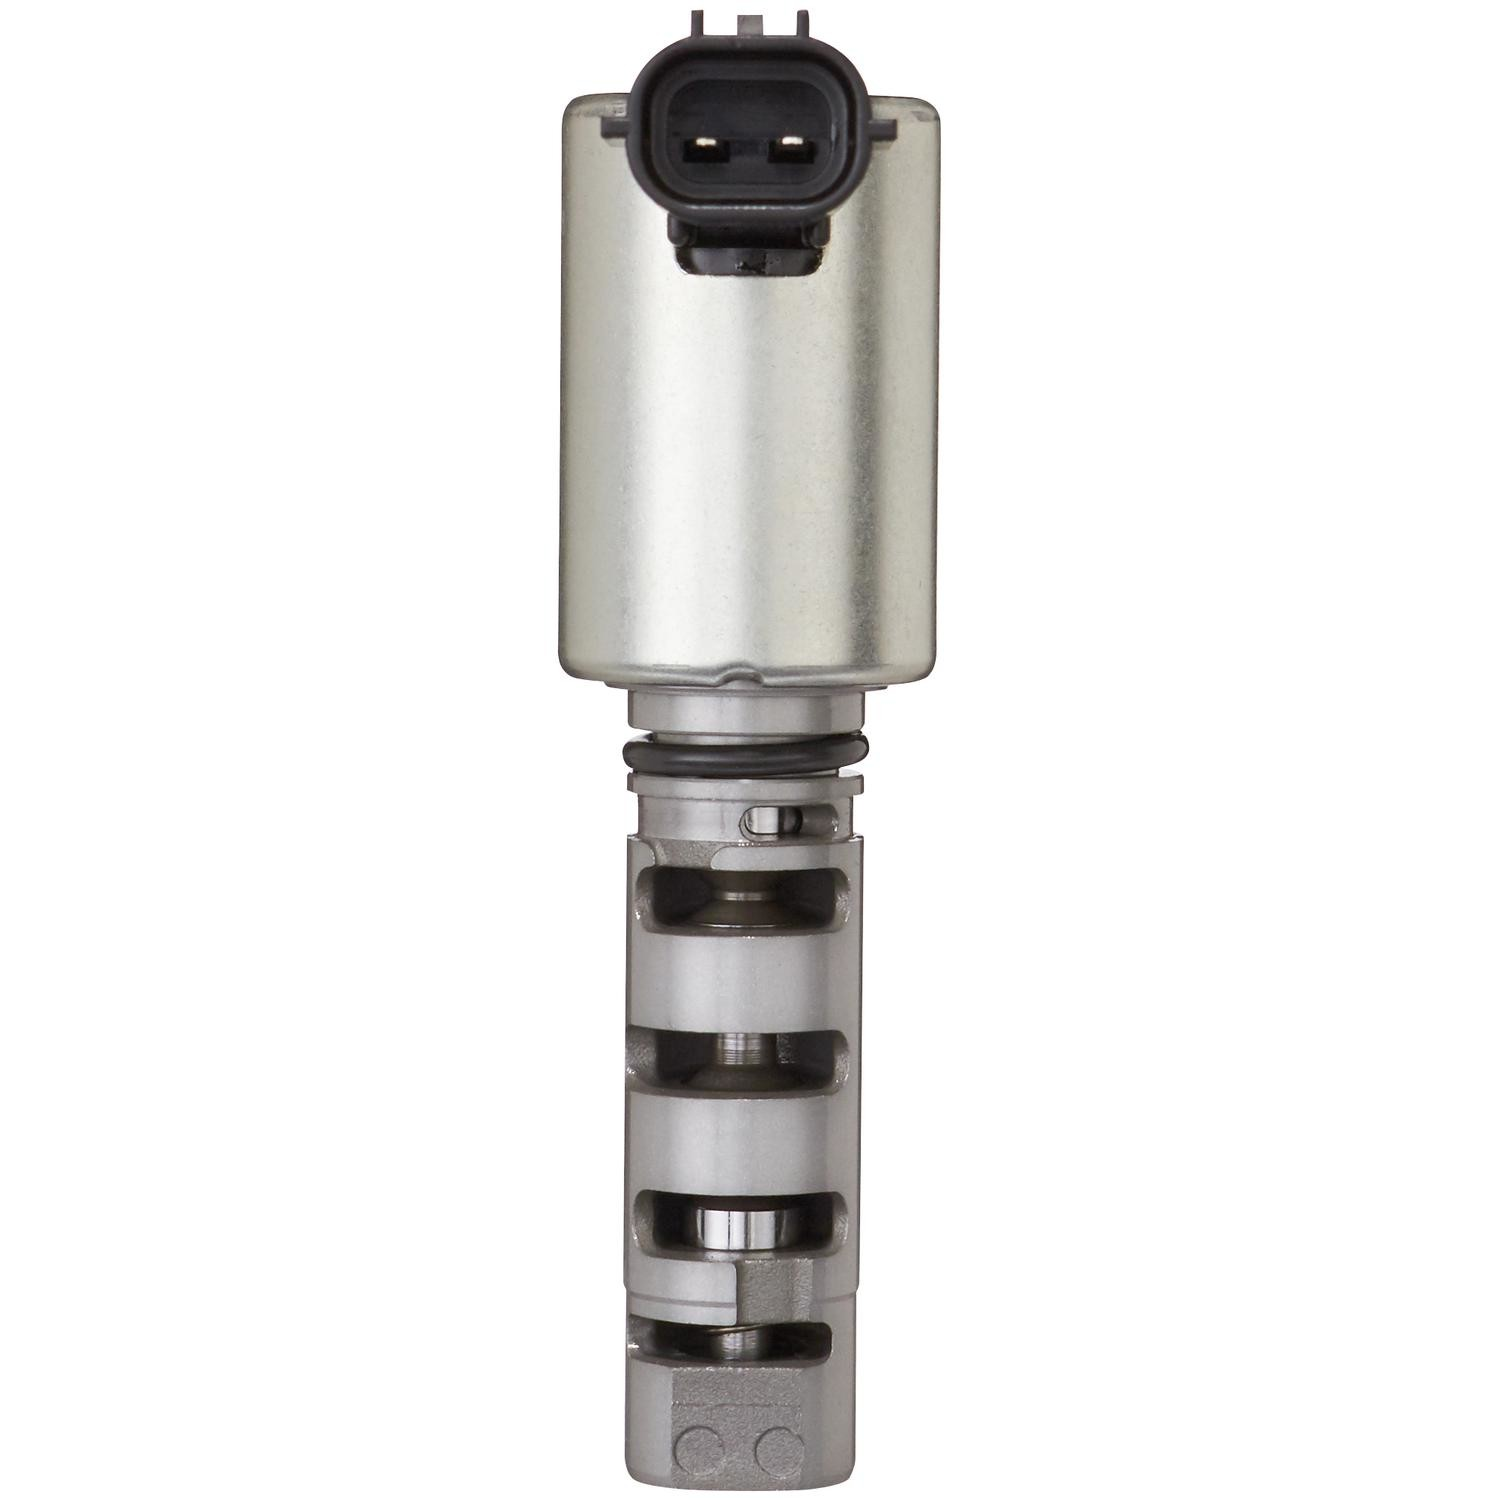 SPECTRA PREMIUM IND, INC. - Engine Variable Valve Timing (VVT) Solenoid (Intake (Right)) - SPC VTS1035